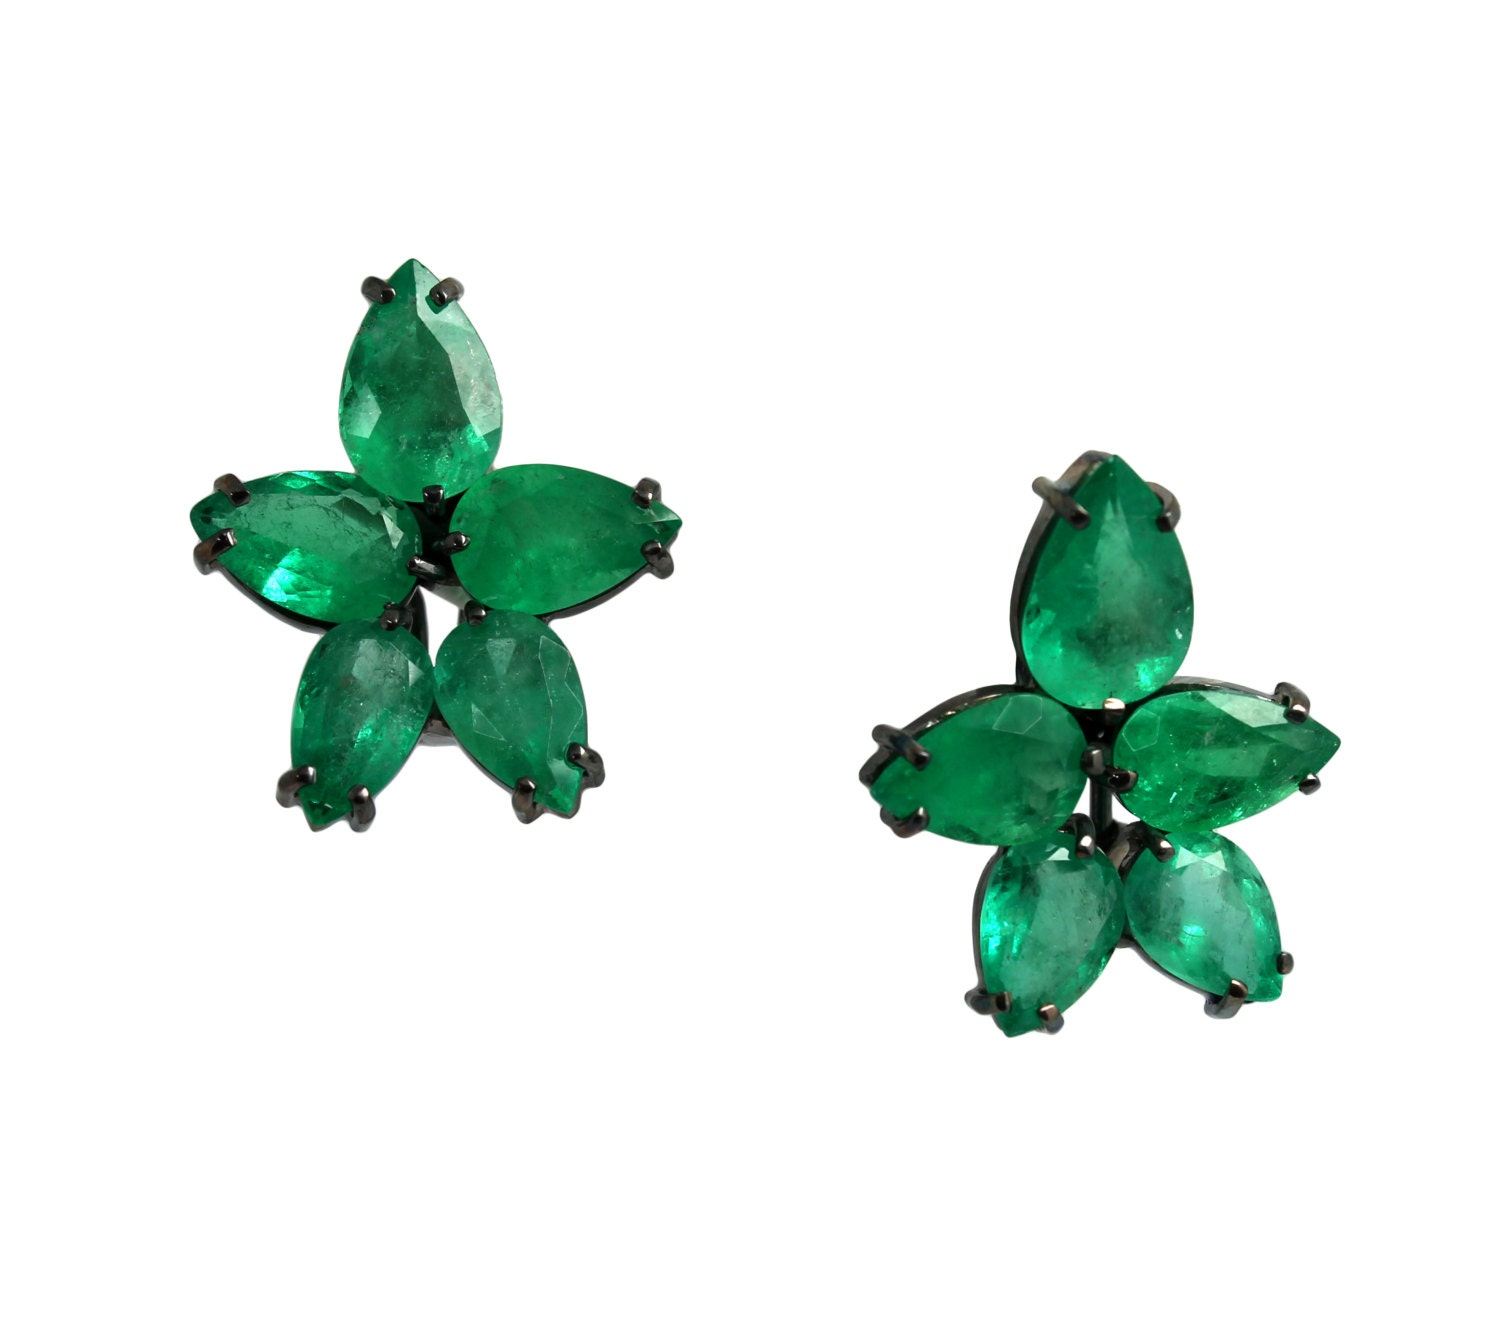 diamond estate company canada coins ladies trade gold finley jewellery earrings natural s emerald premier and img